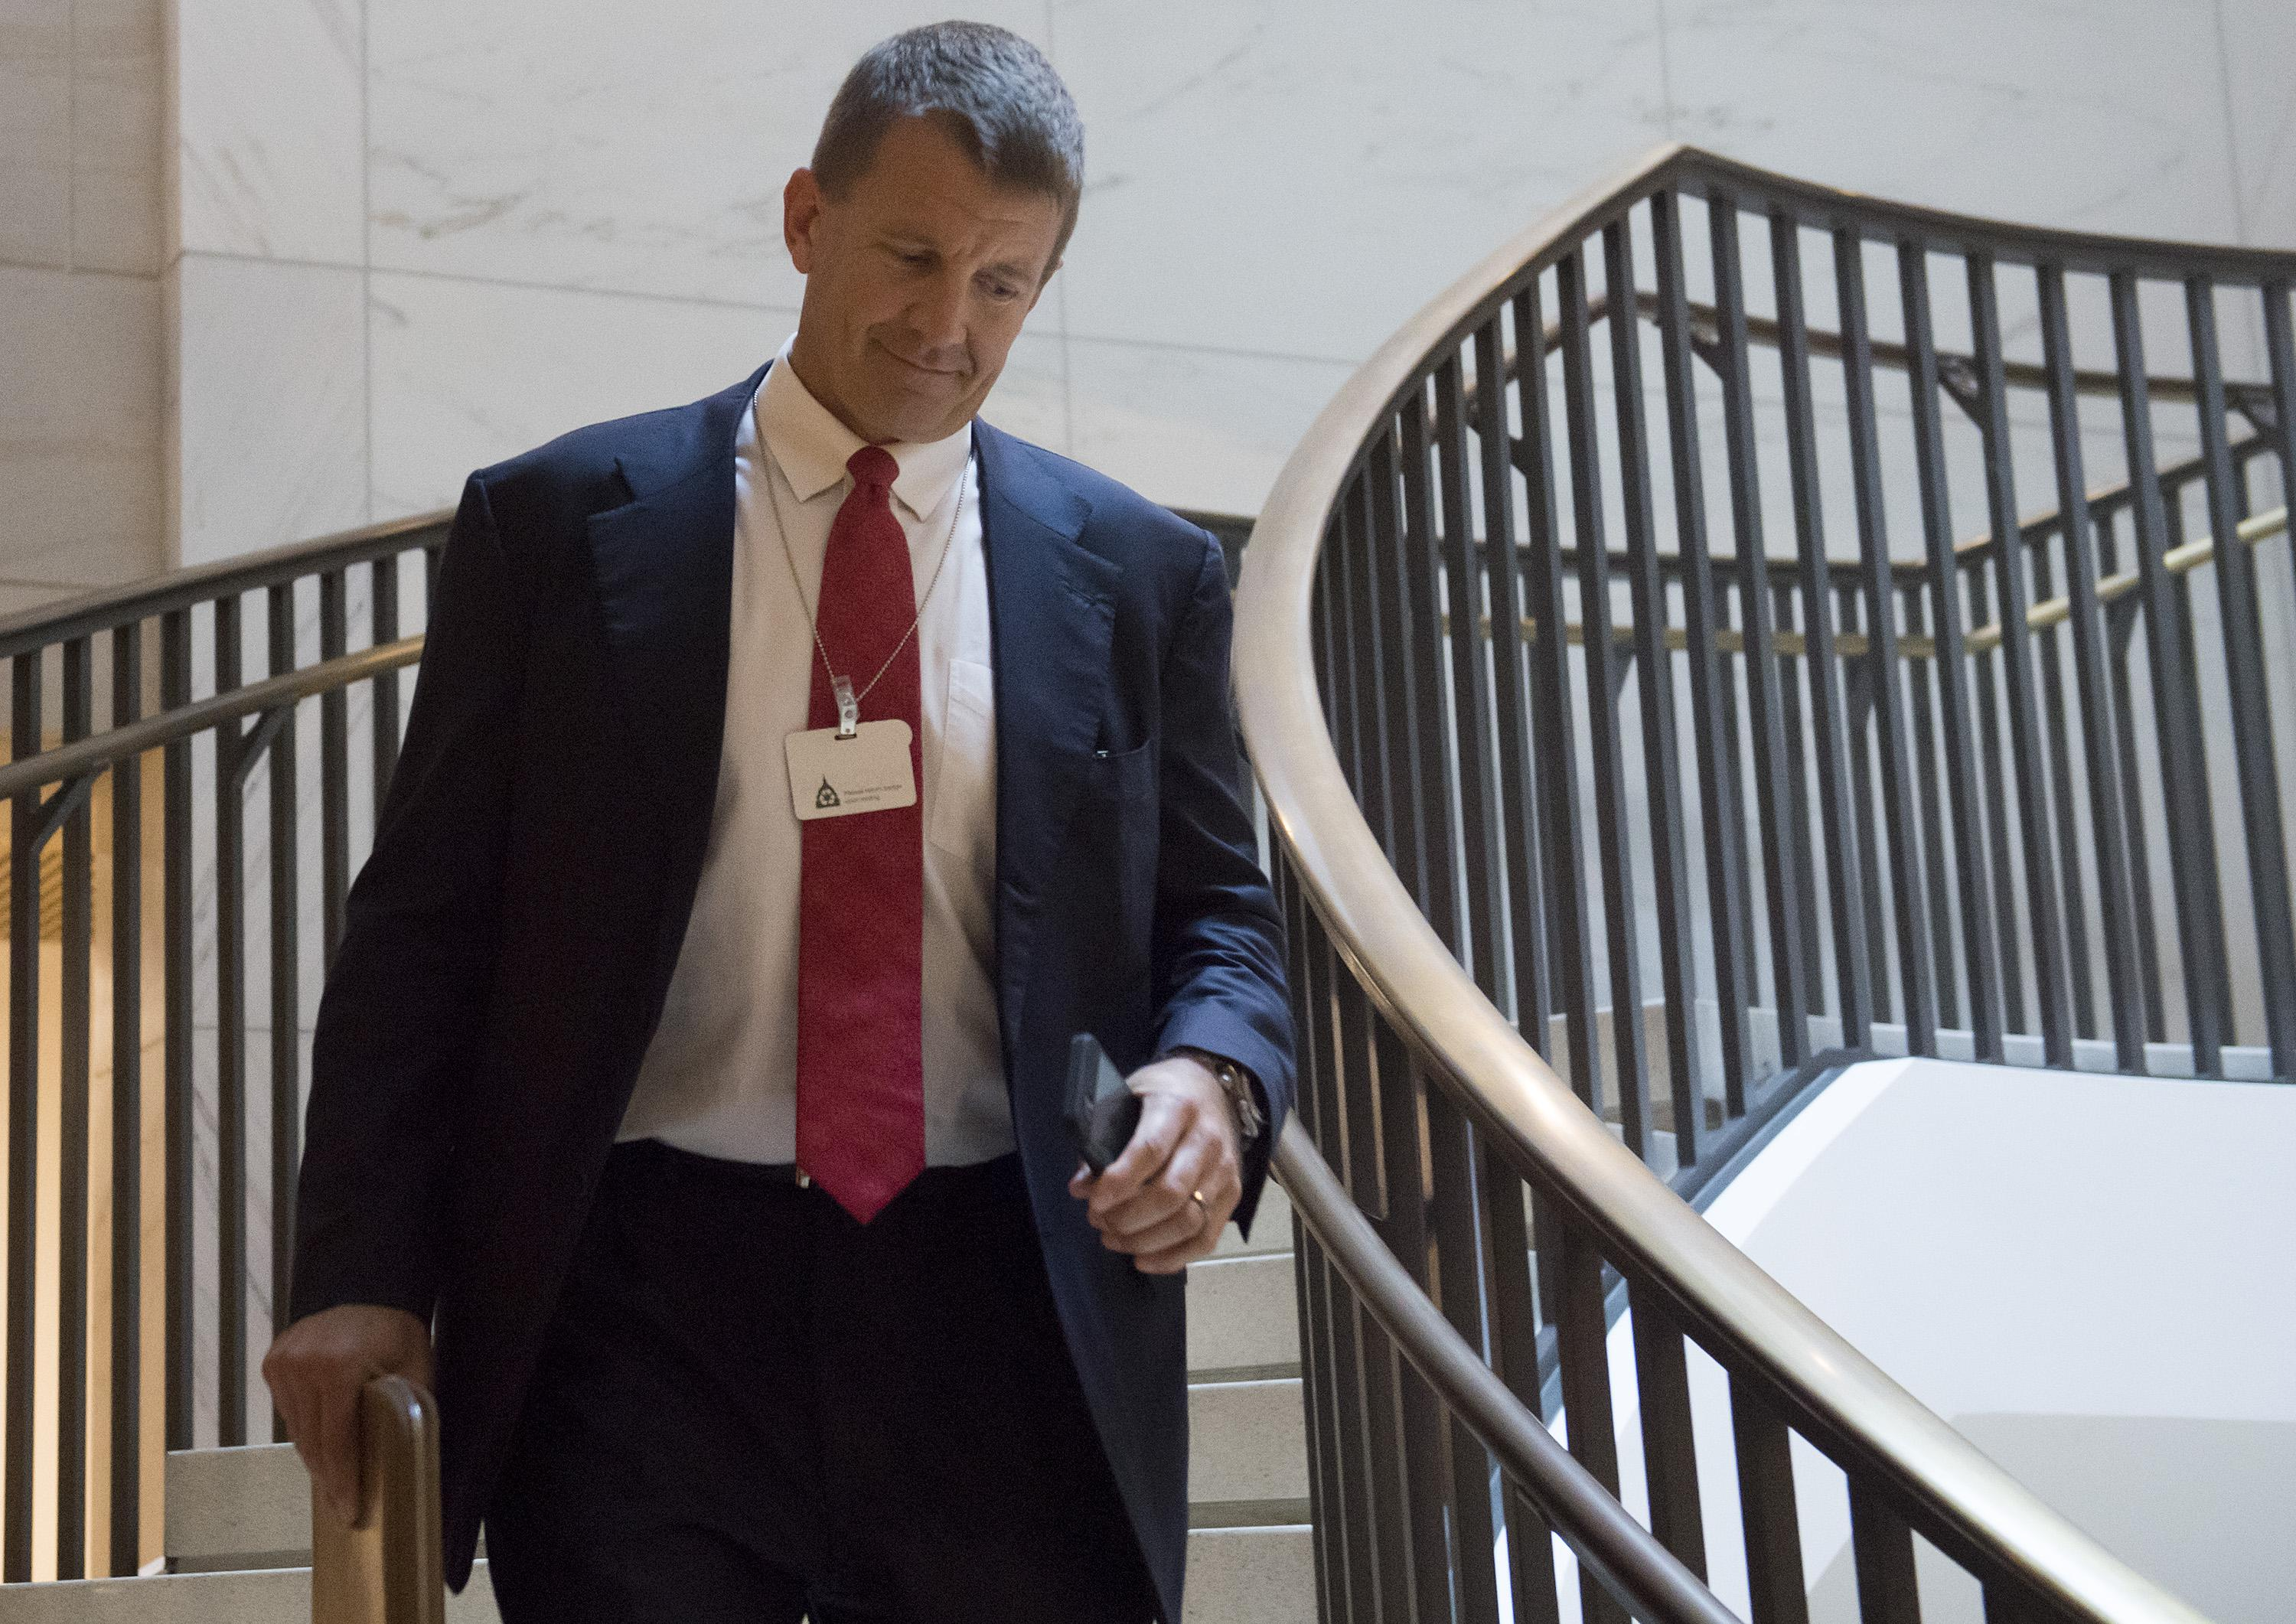 Erik Prince arrives to testify during a closed-door House Select Intelligence Committee hearing on Capitol Hill in Washington, DC, November 30, 2017.